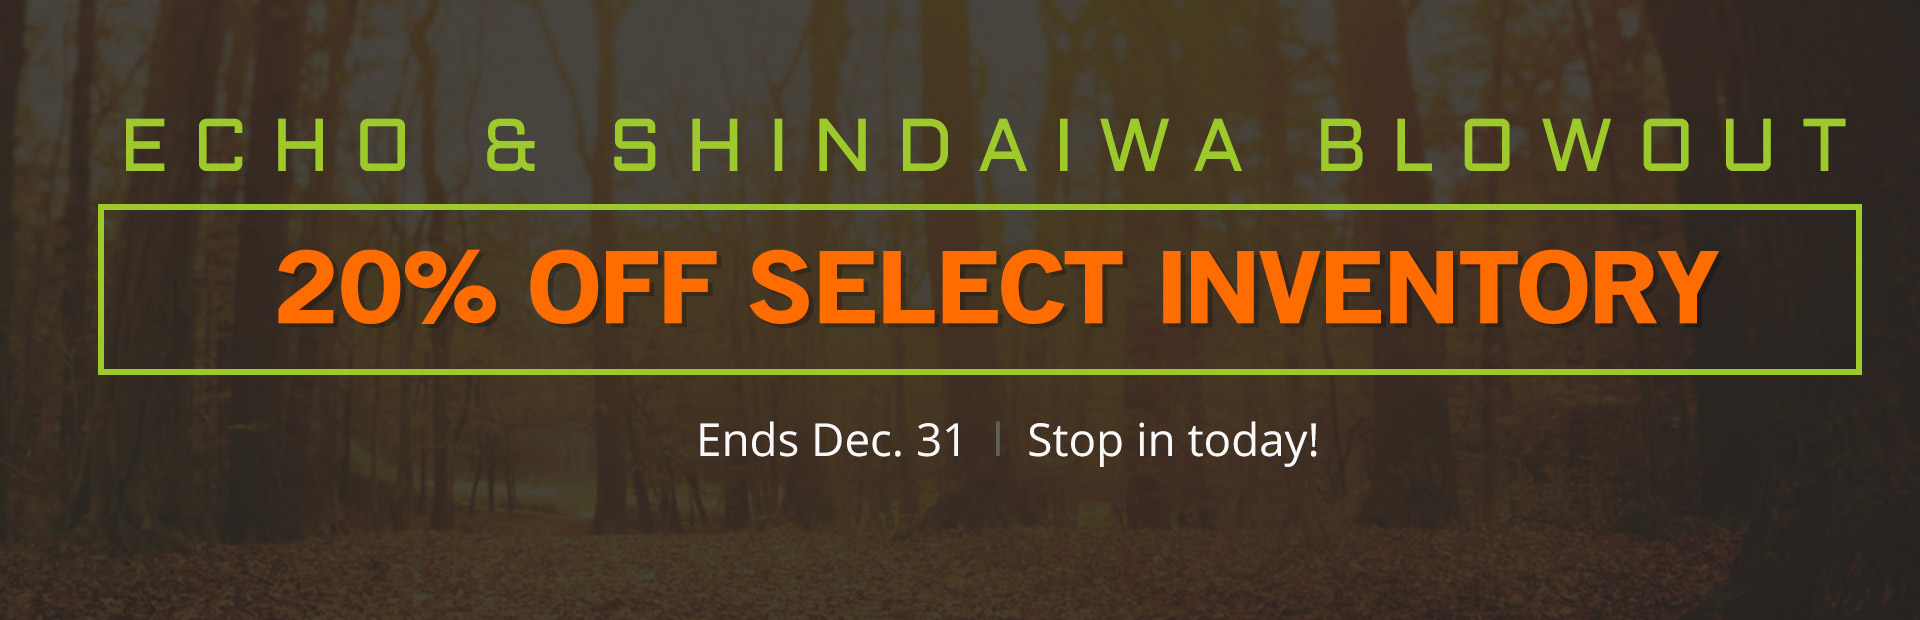 ECHO and Shindaiwa Blowout: Get 20% off select inventory!